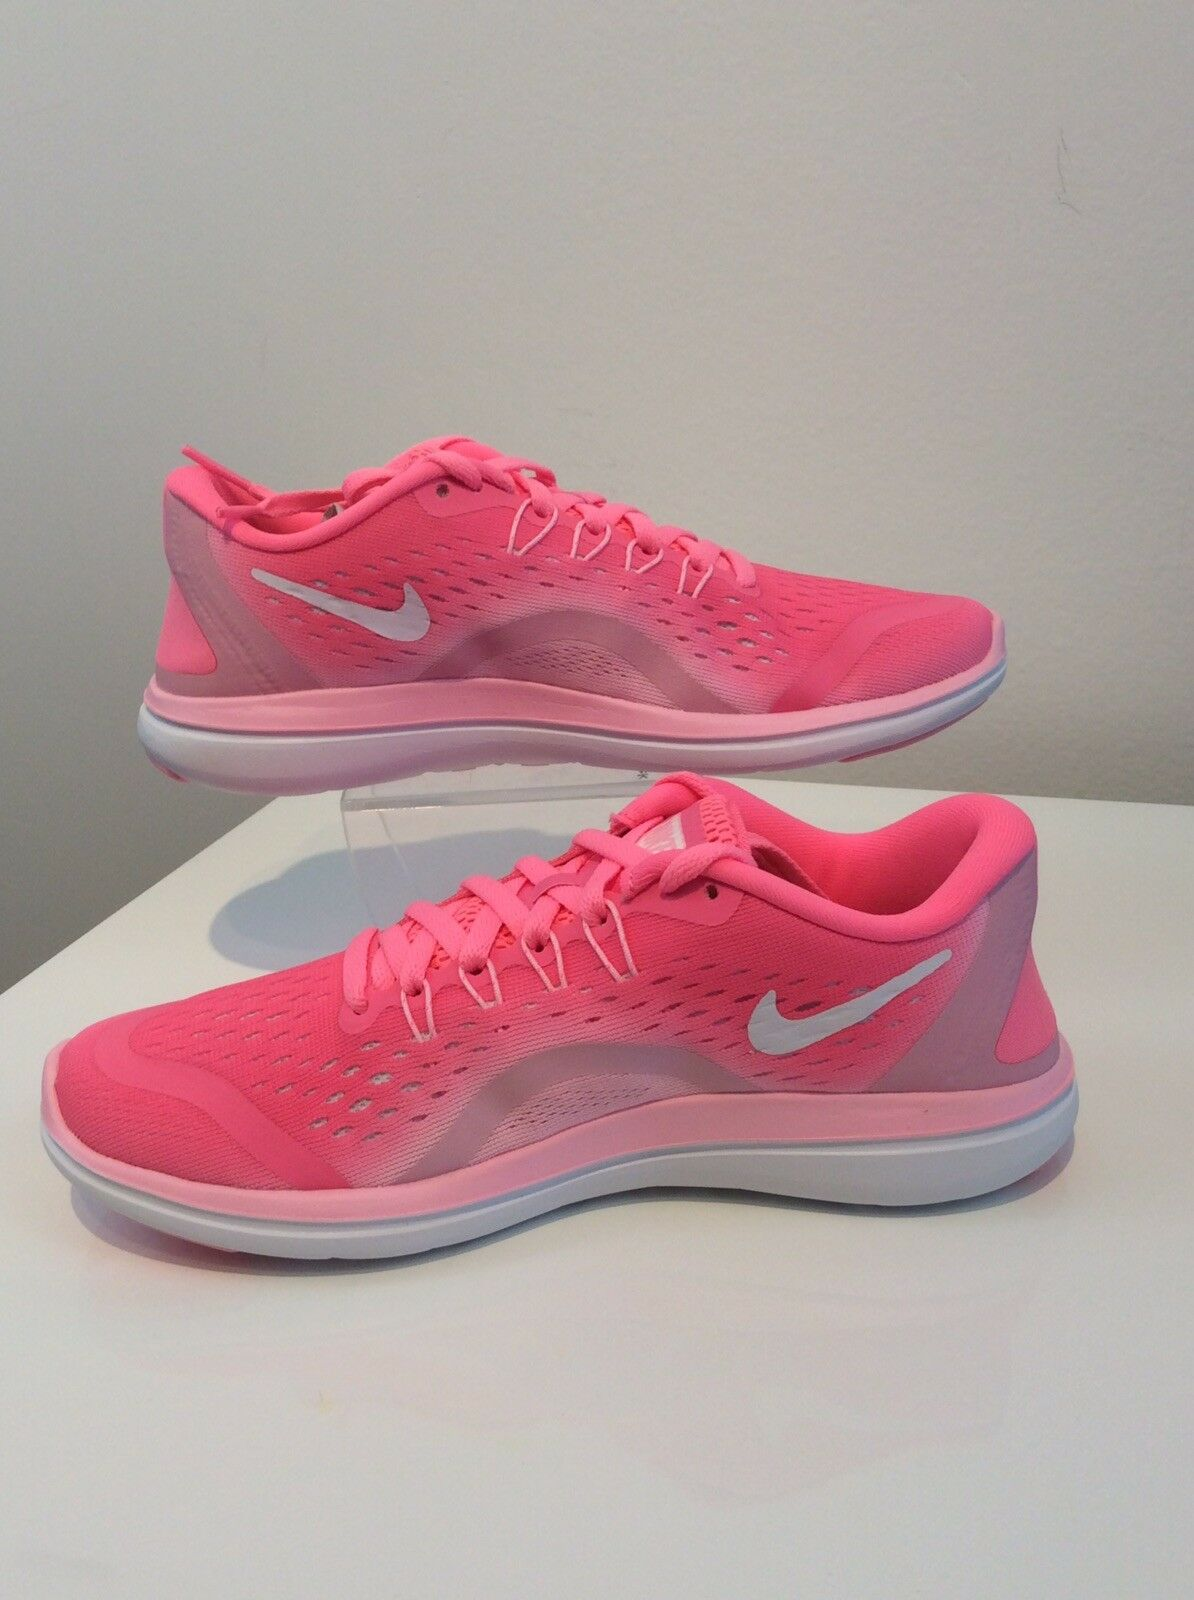 NIKE Wouomo WNS Flex  2017 RN, Sunset Pulse  bianca -Arctic Punch, 6 US  negozio online outlet